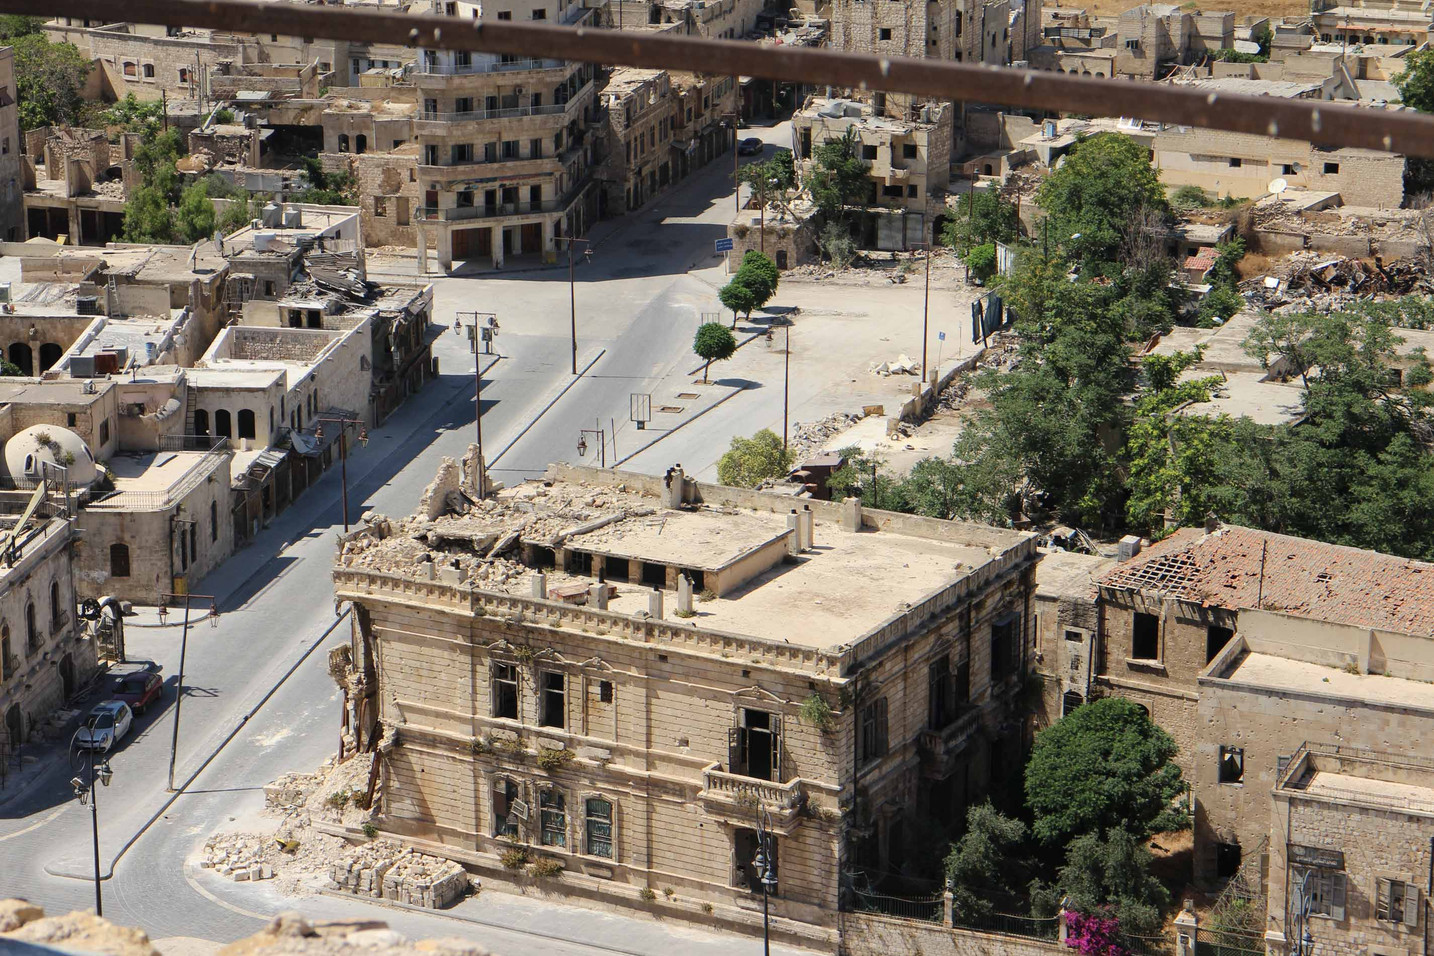 Ruined_city_in_Syria.jpg